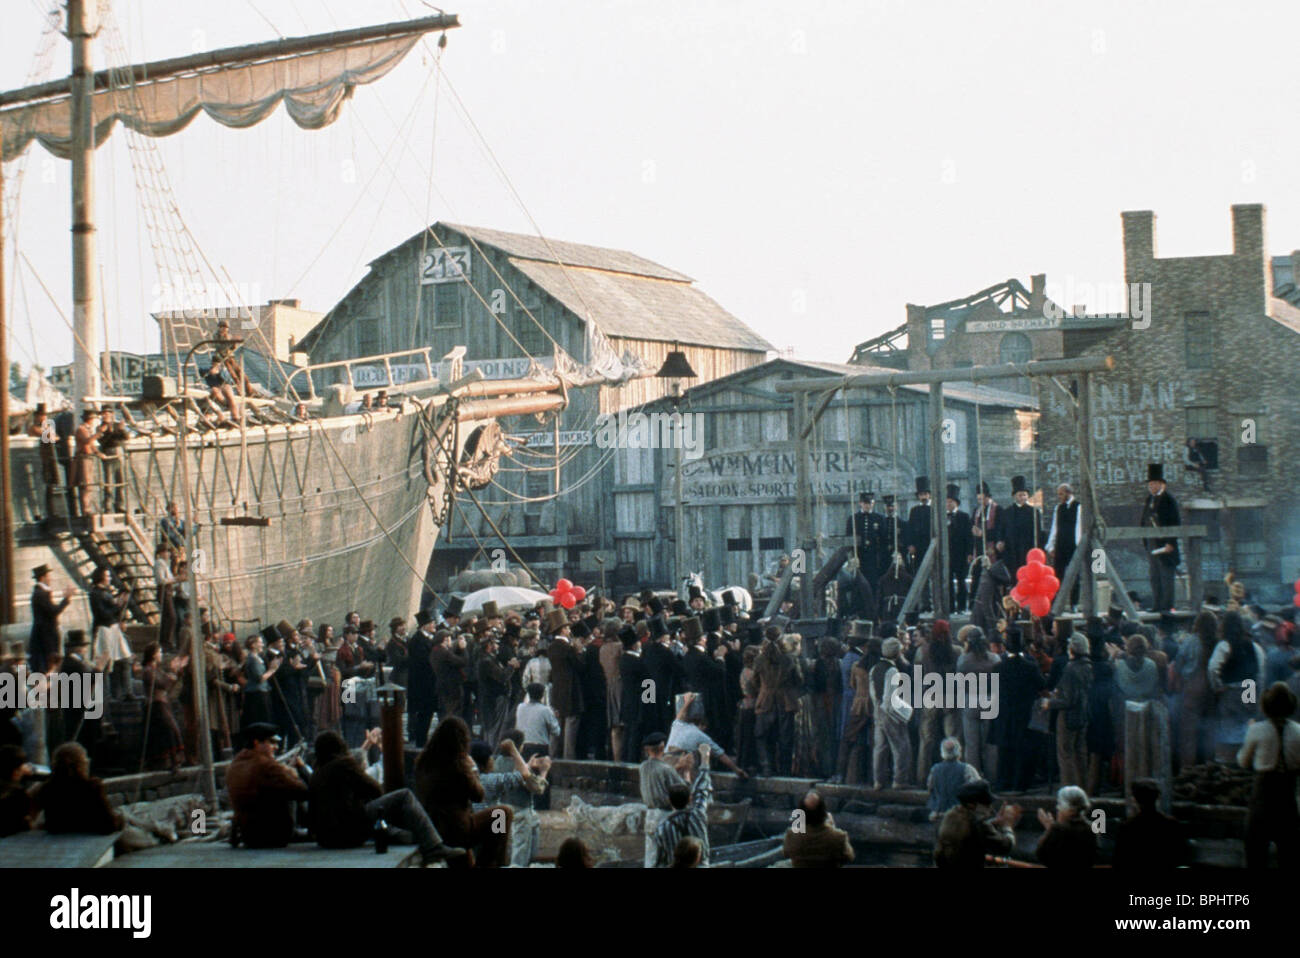 DOCKLAND GALLOWS SCENE GANGS OF NEW YORK (2002) - Stock Image